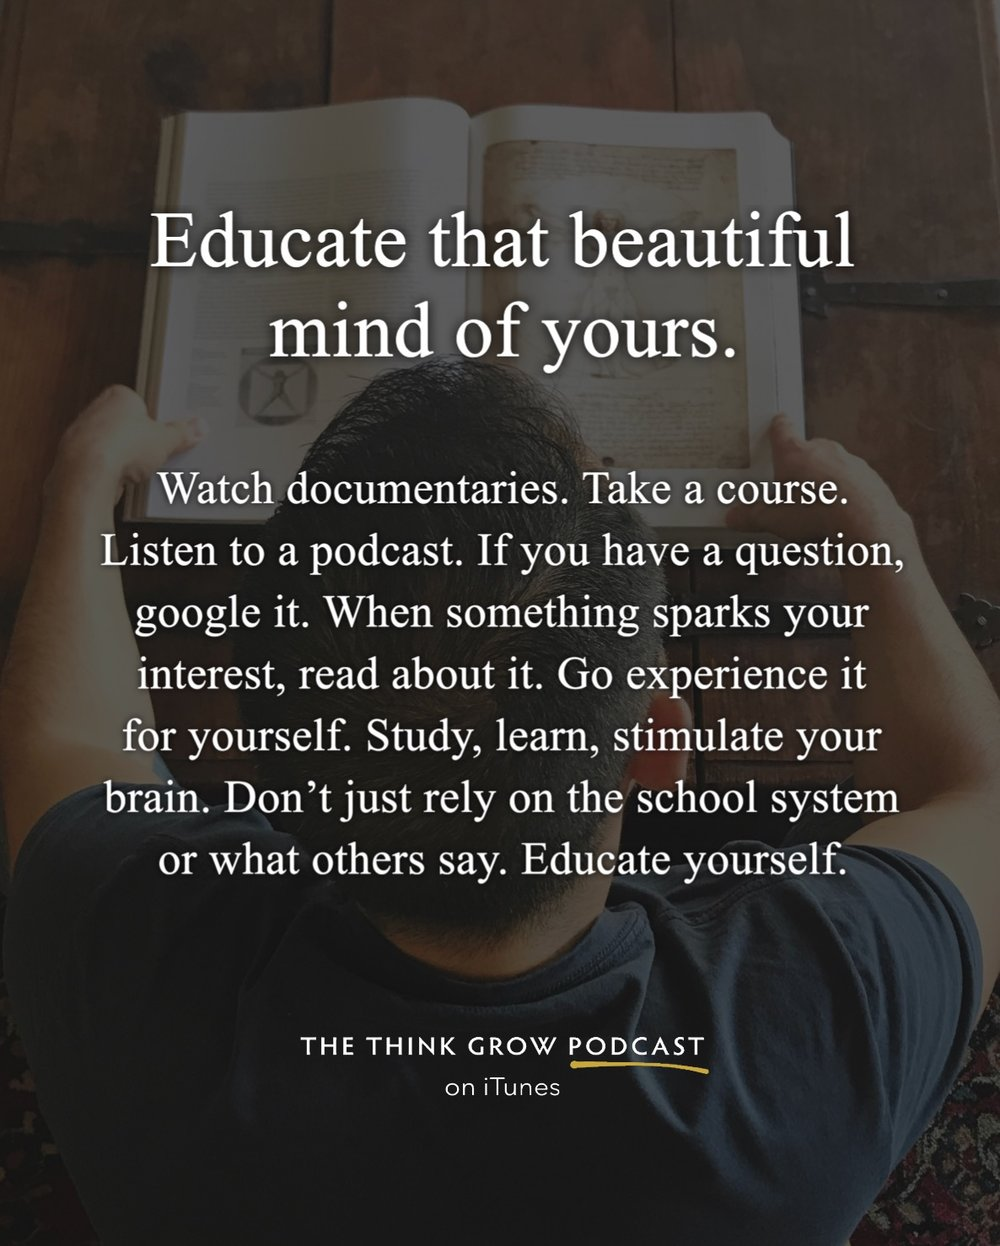 educate that beautiful mind (1).JPG